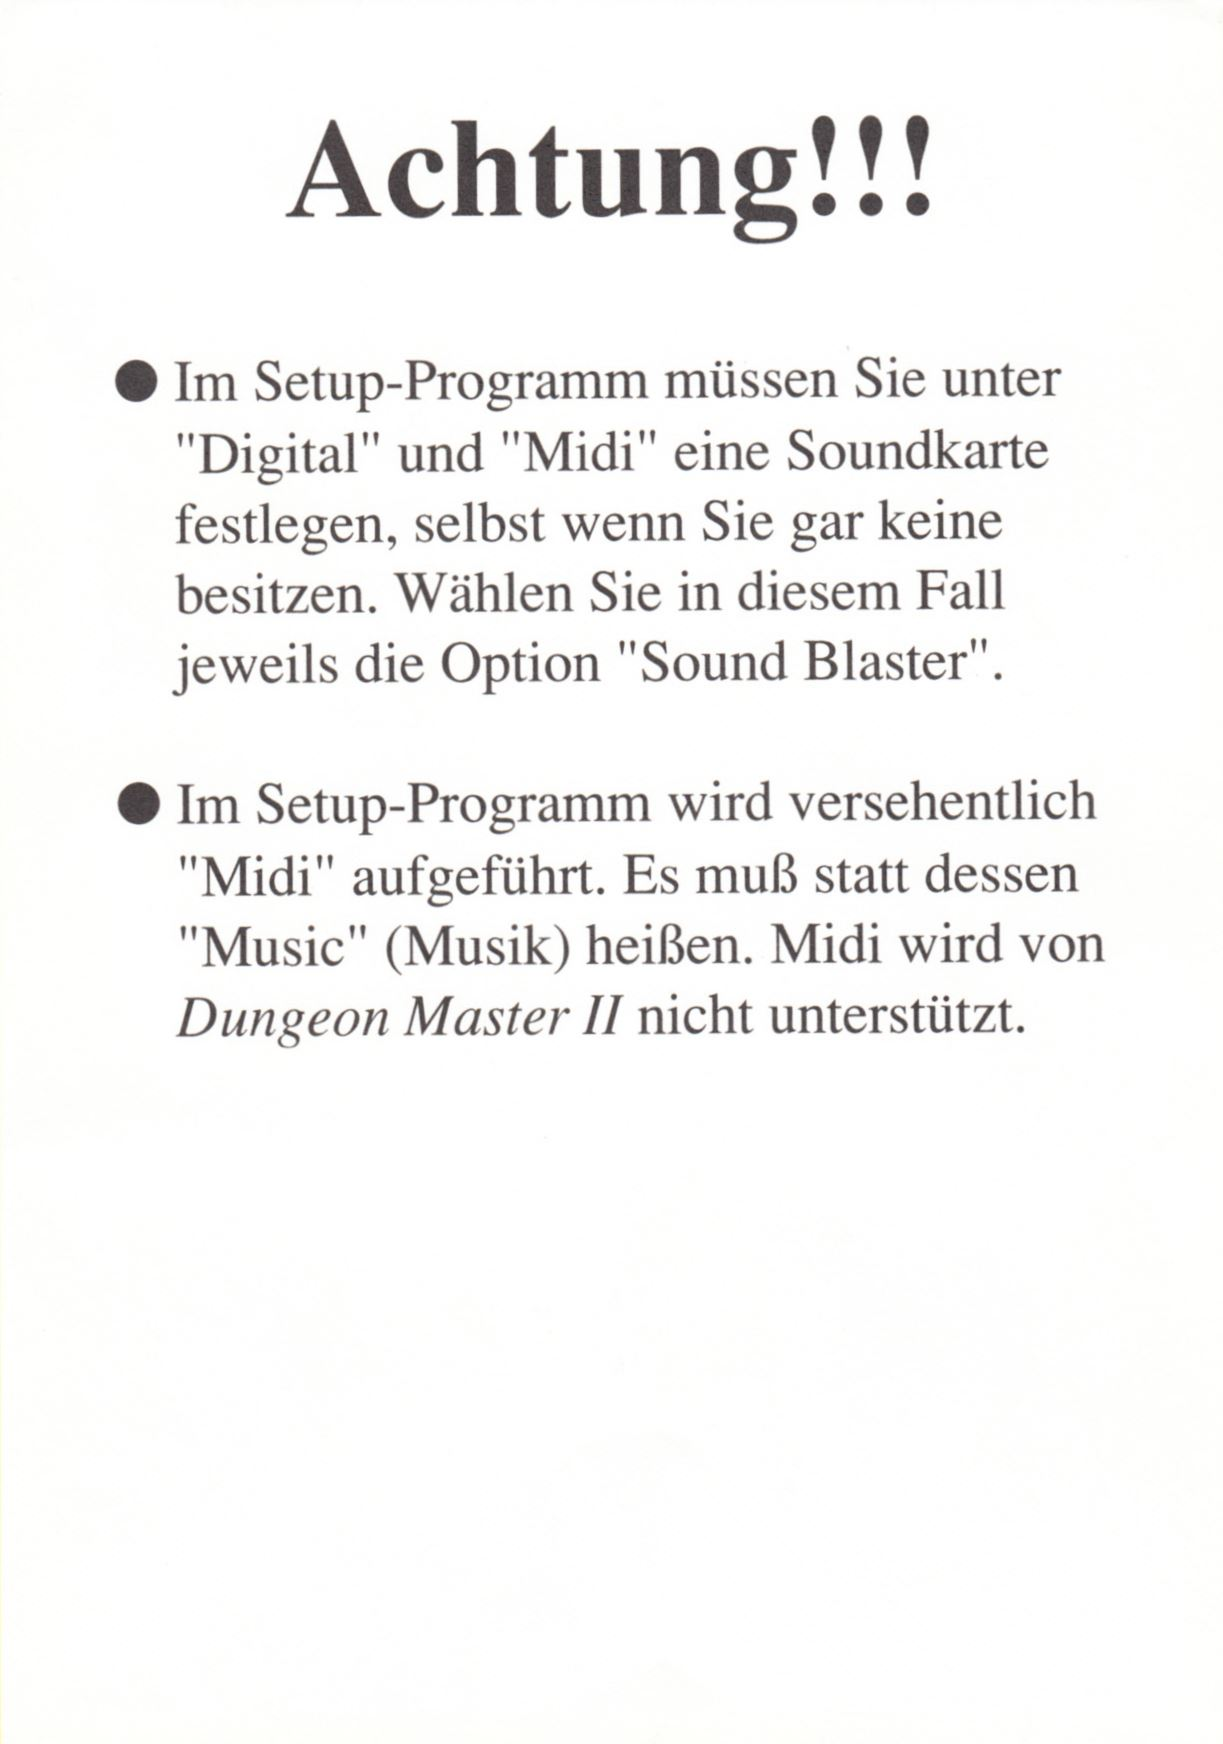 Game - Dungeon Master II - DE - PC - CD Version - Note - Front - Scan